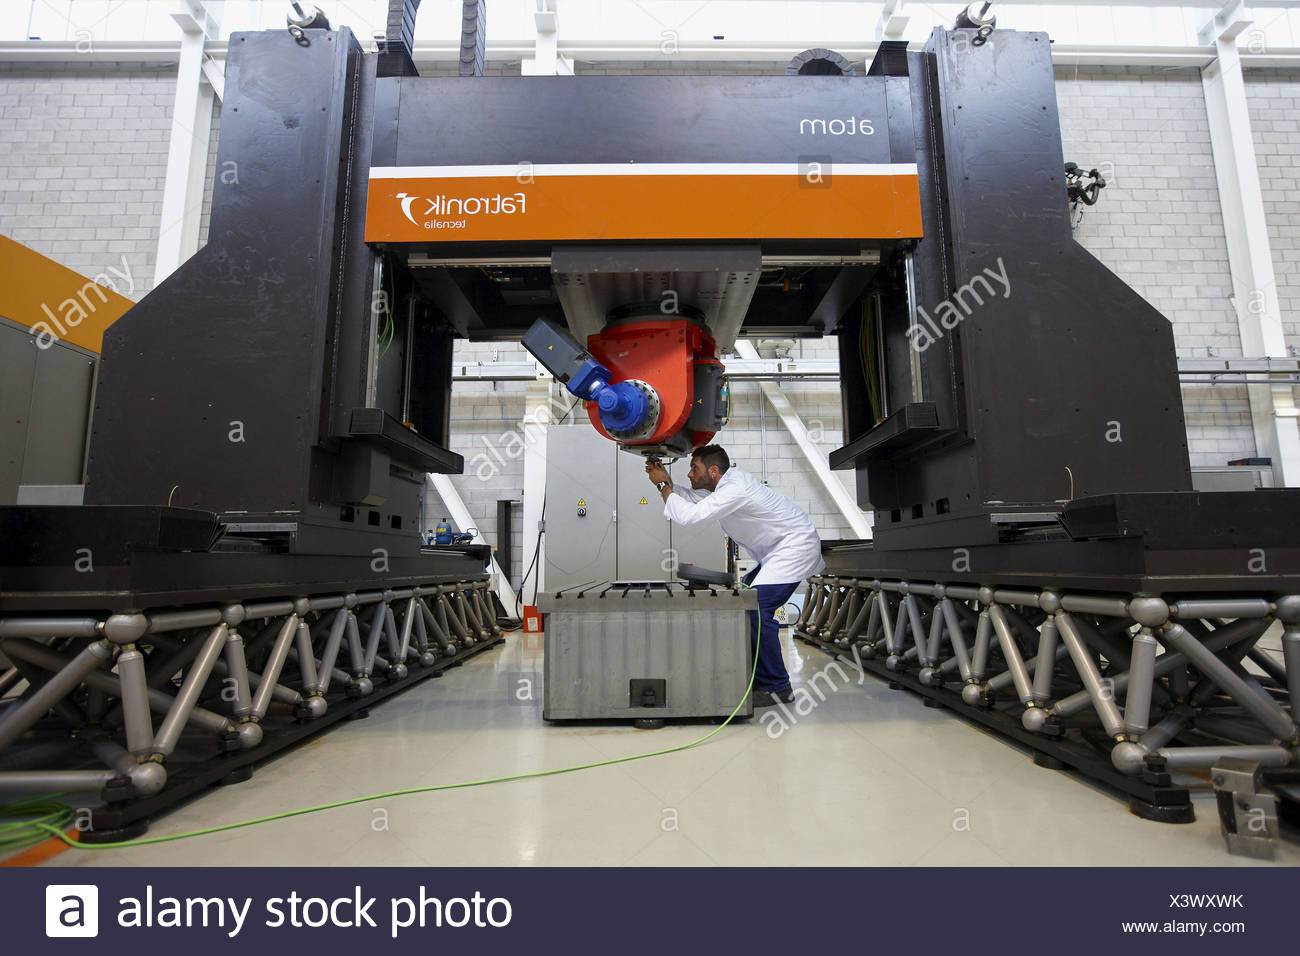 Researcher working on Atom friction stir welding machine, Fatronik-Tecnalia, Research and Technology Center, Donostia, Basque - Stock Image